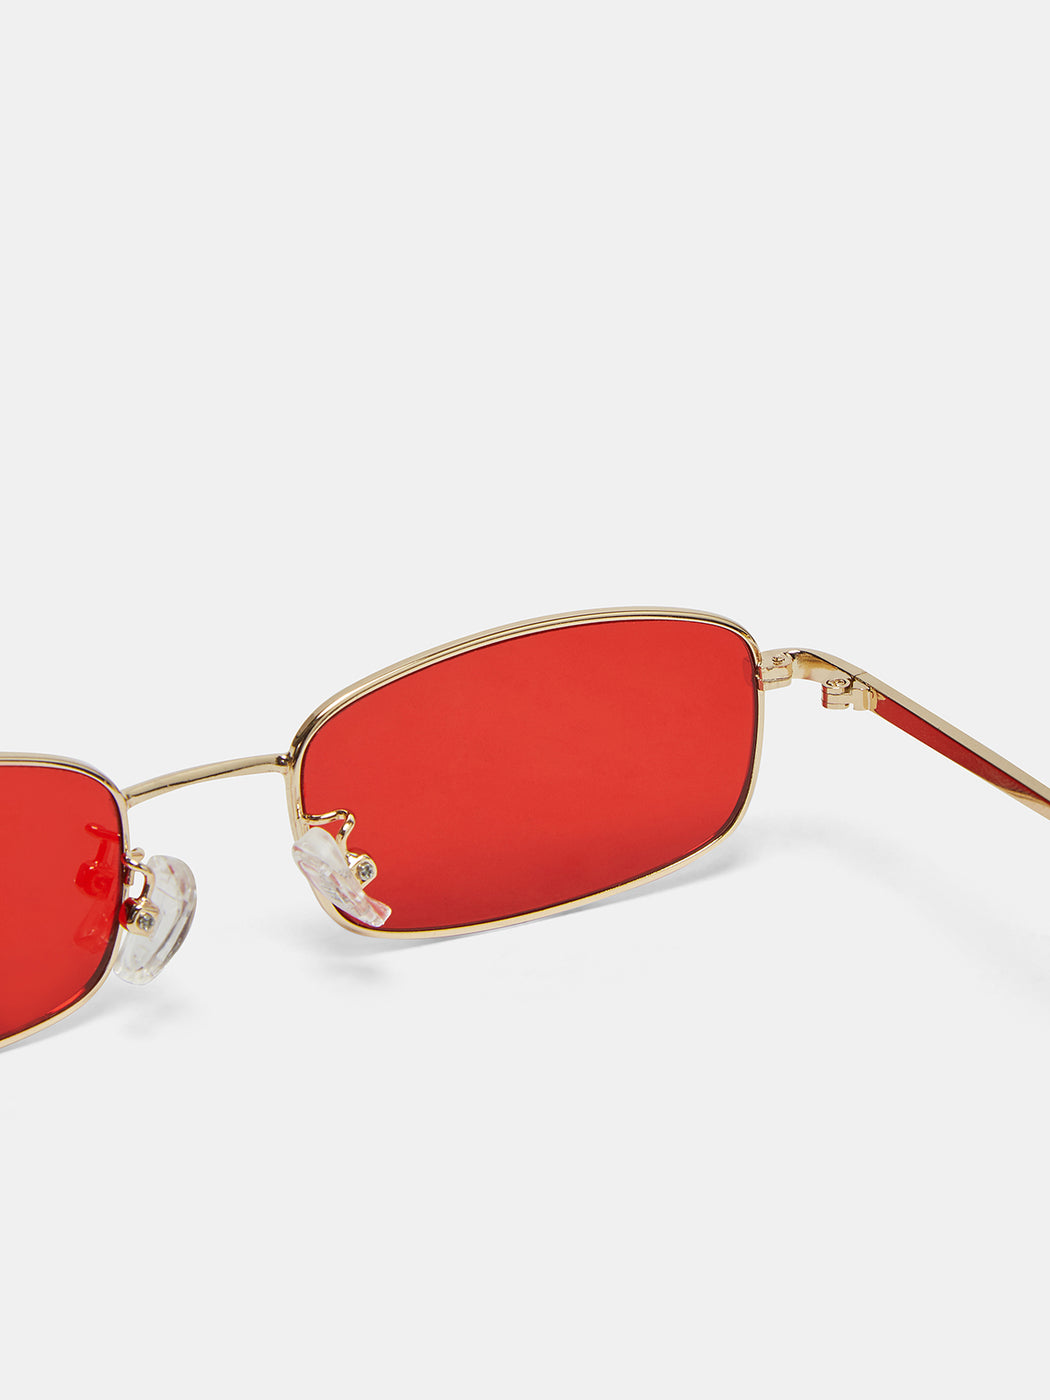 Fortune Teller Sunglasses